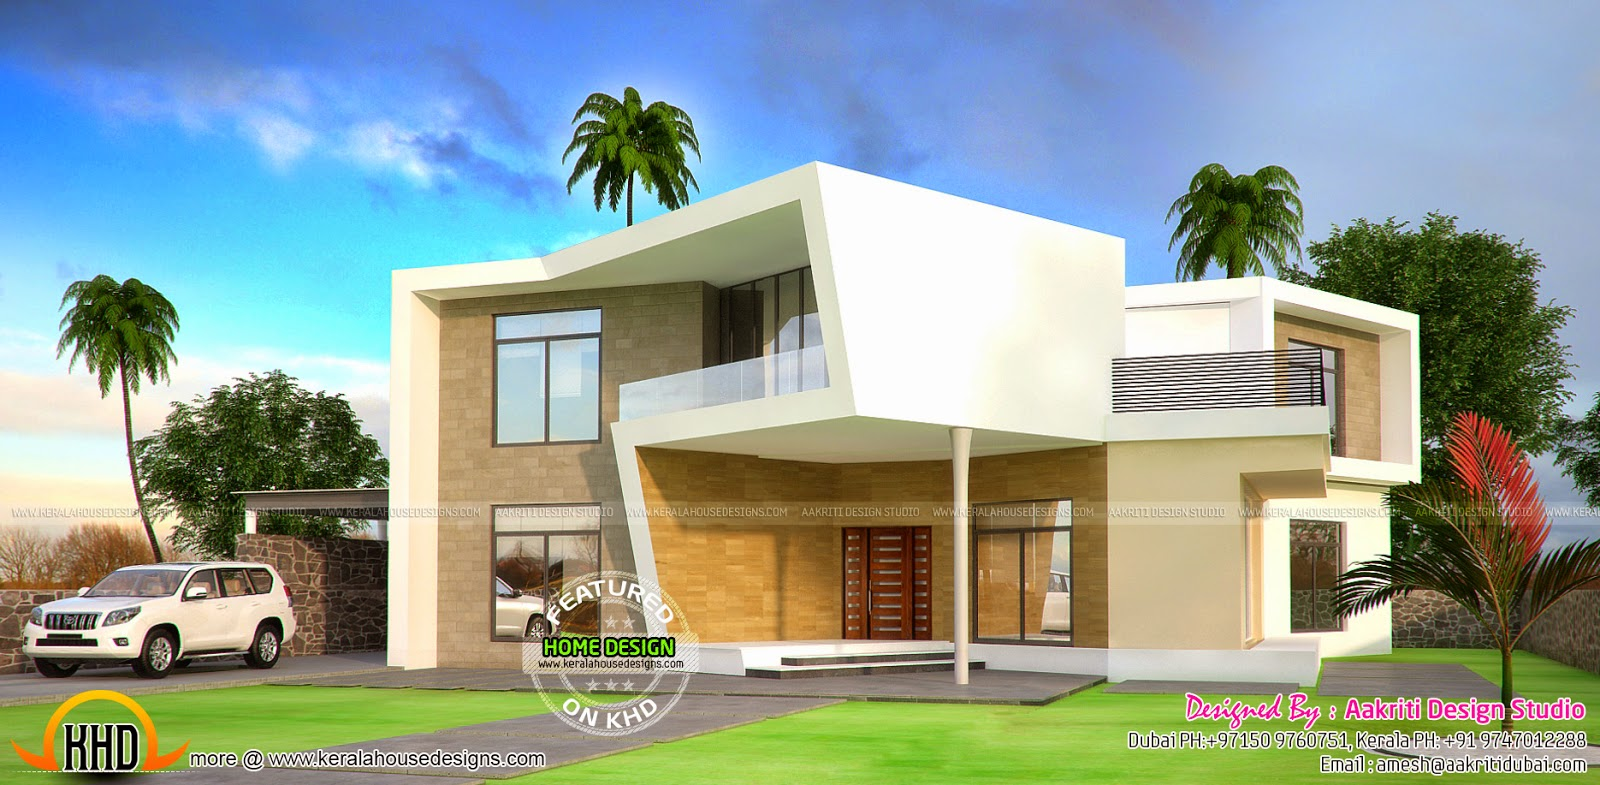 New concept house plan kerala home design and floor plans for Concept homes plans